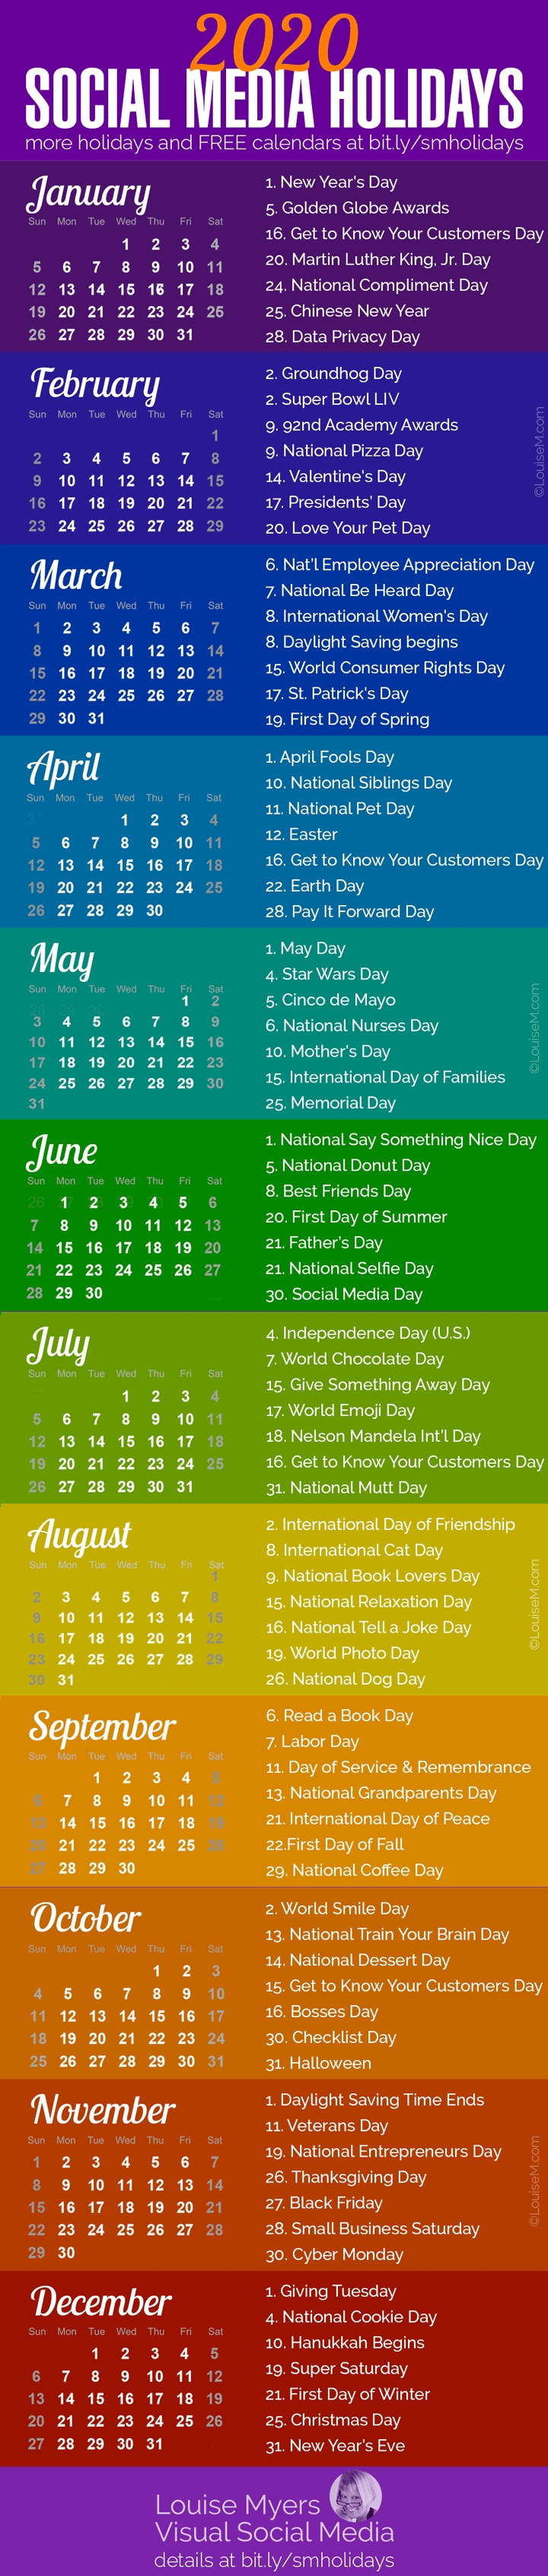 84 Social Media Holidays You Need In 2020: Indispensable! with Special Days For 2020 Calender